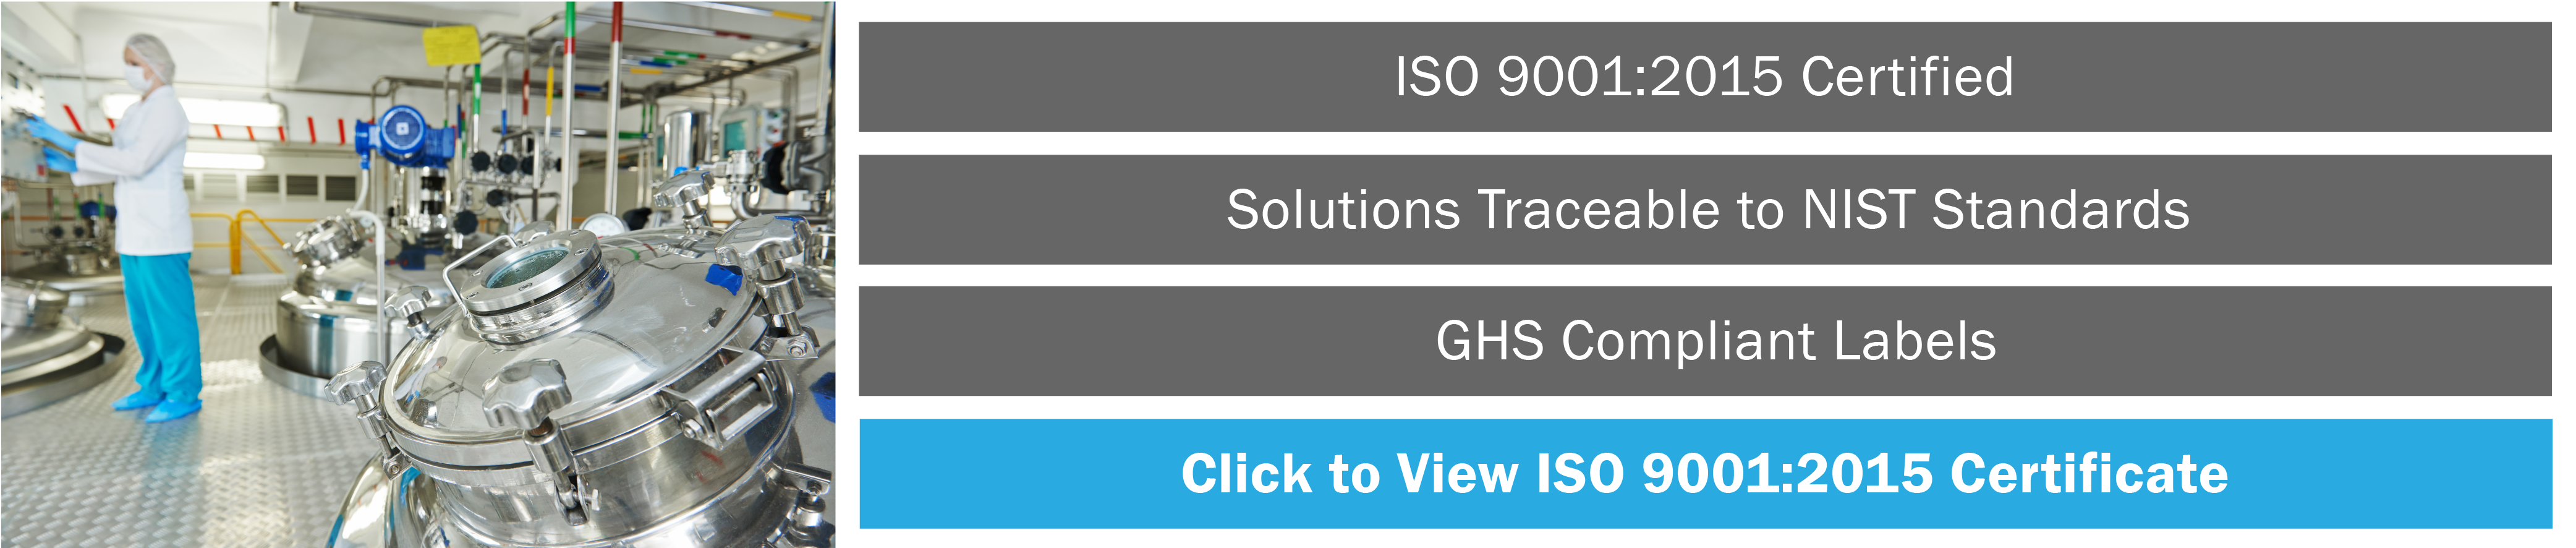 ISO 9001 banner 2-03.png